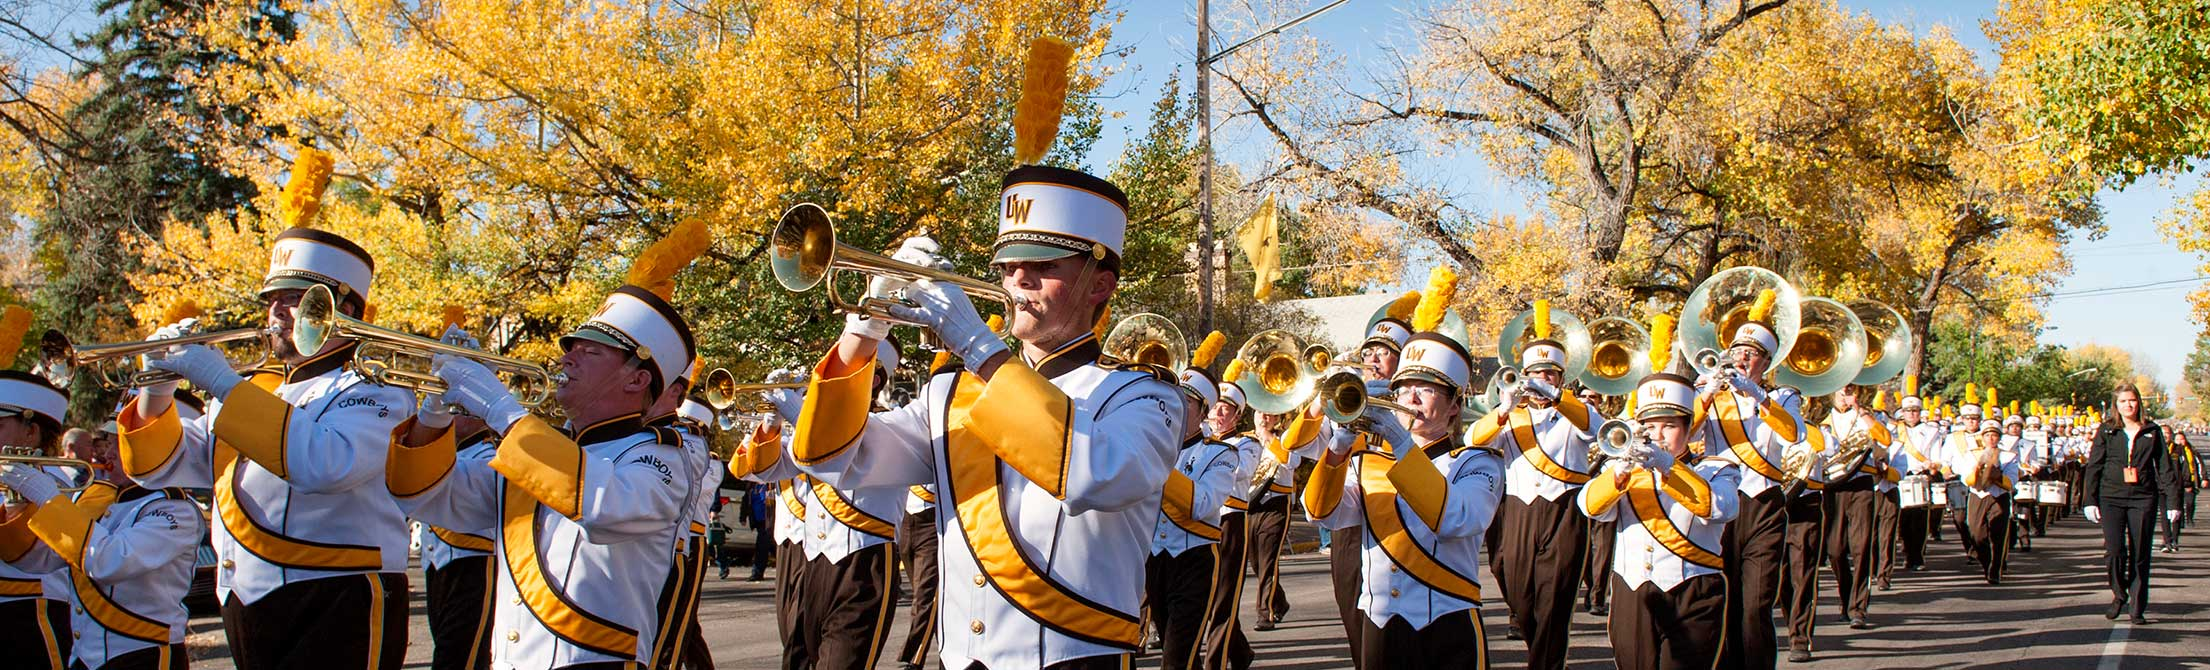 Image of Marching Band